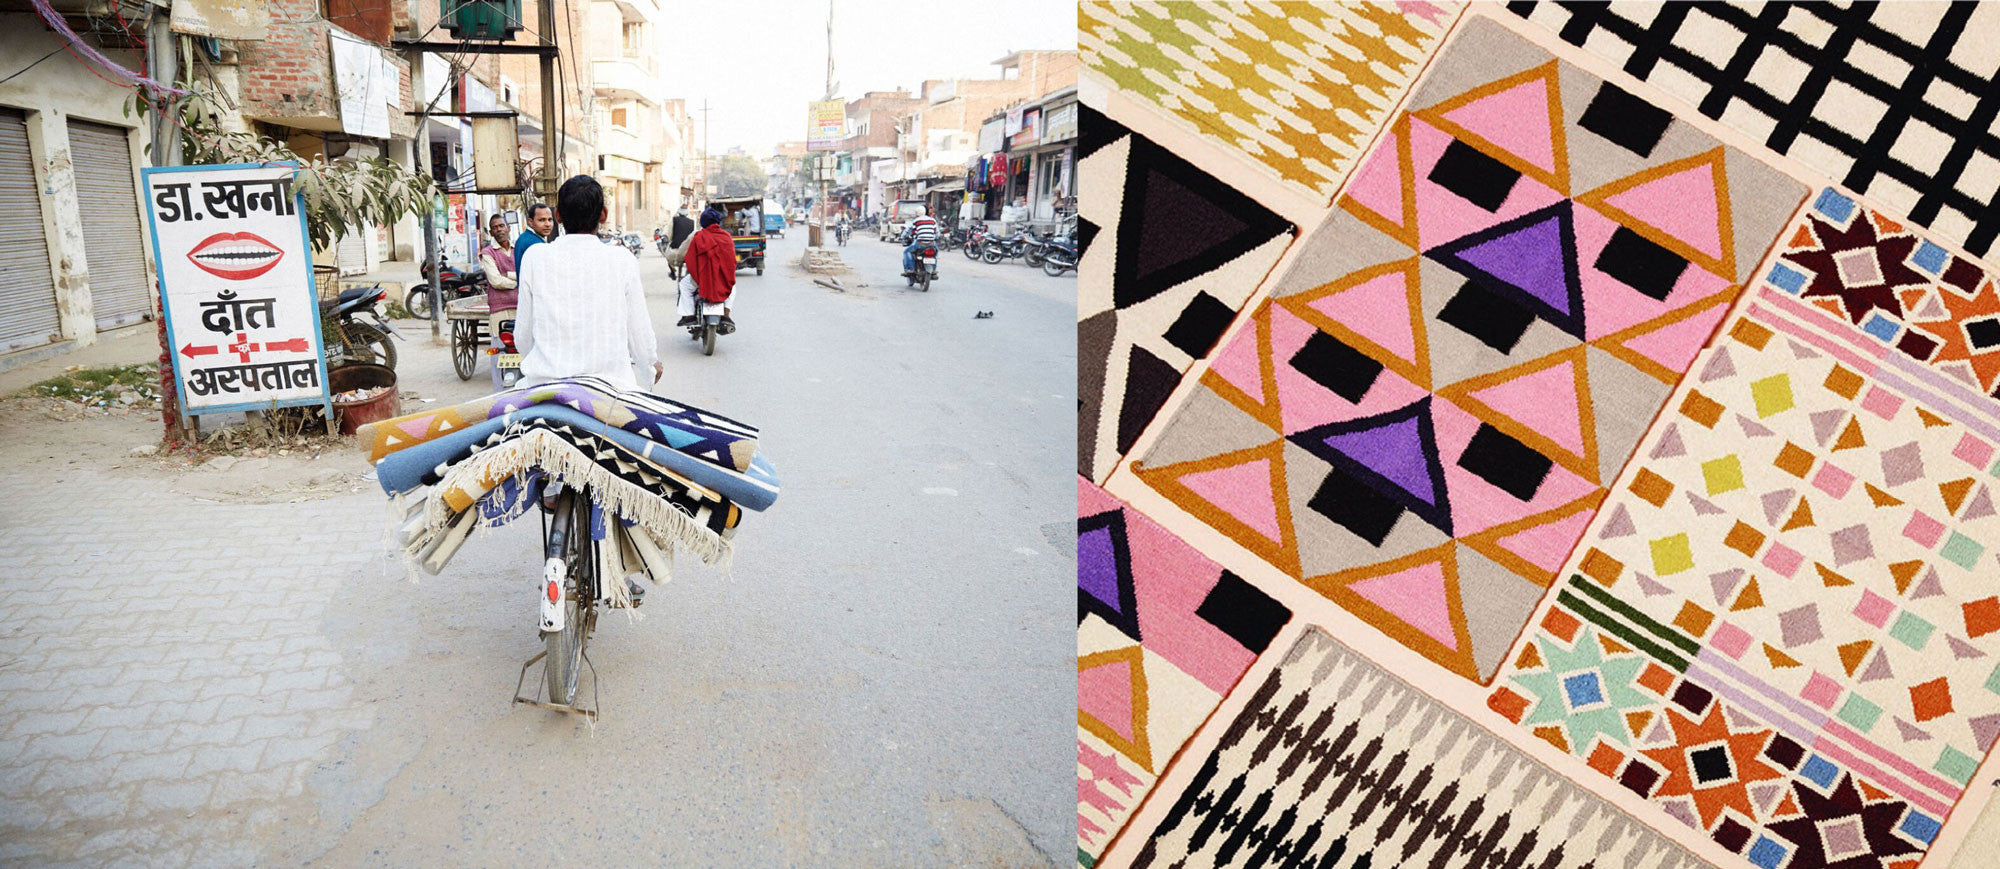 Aelfie handmade rugs in India